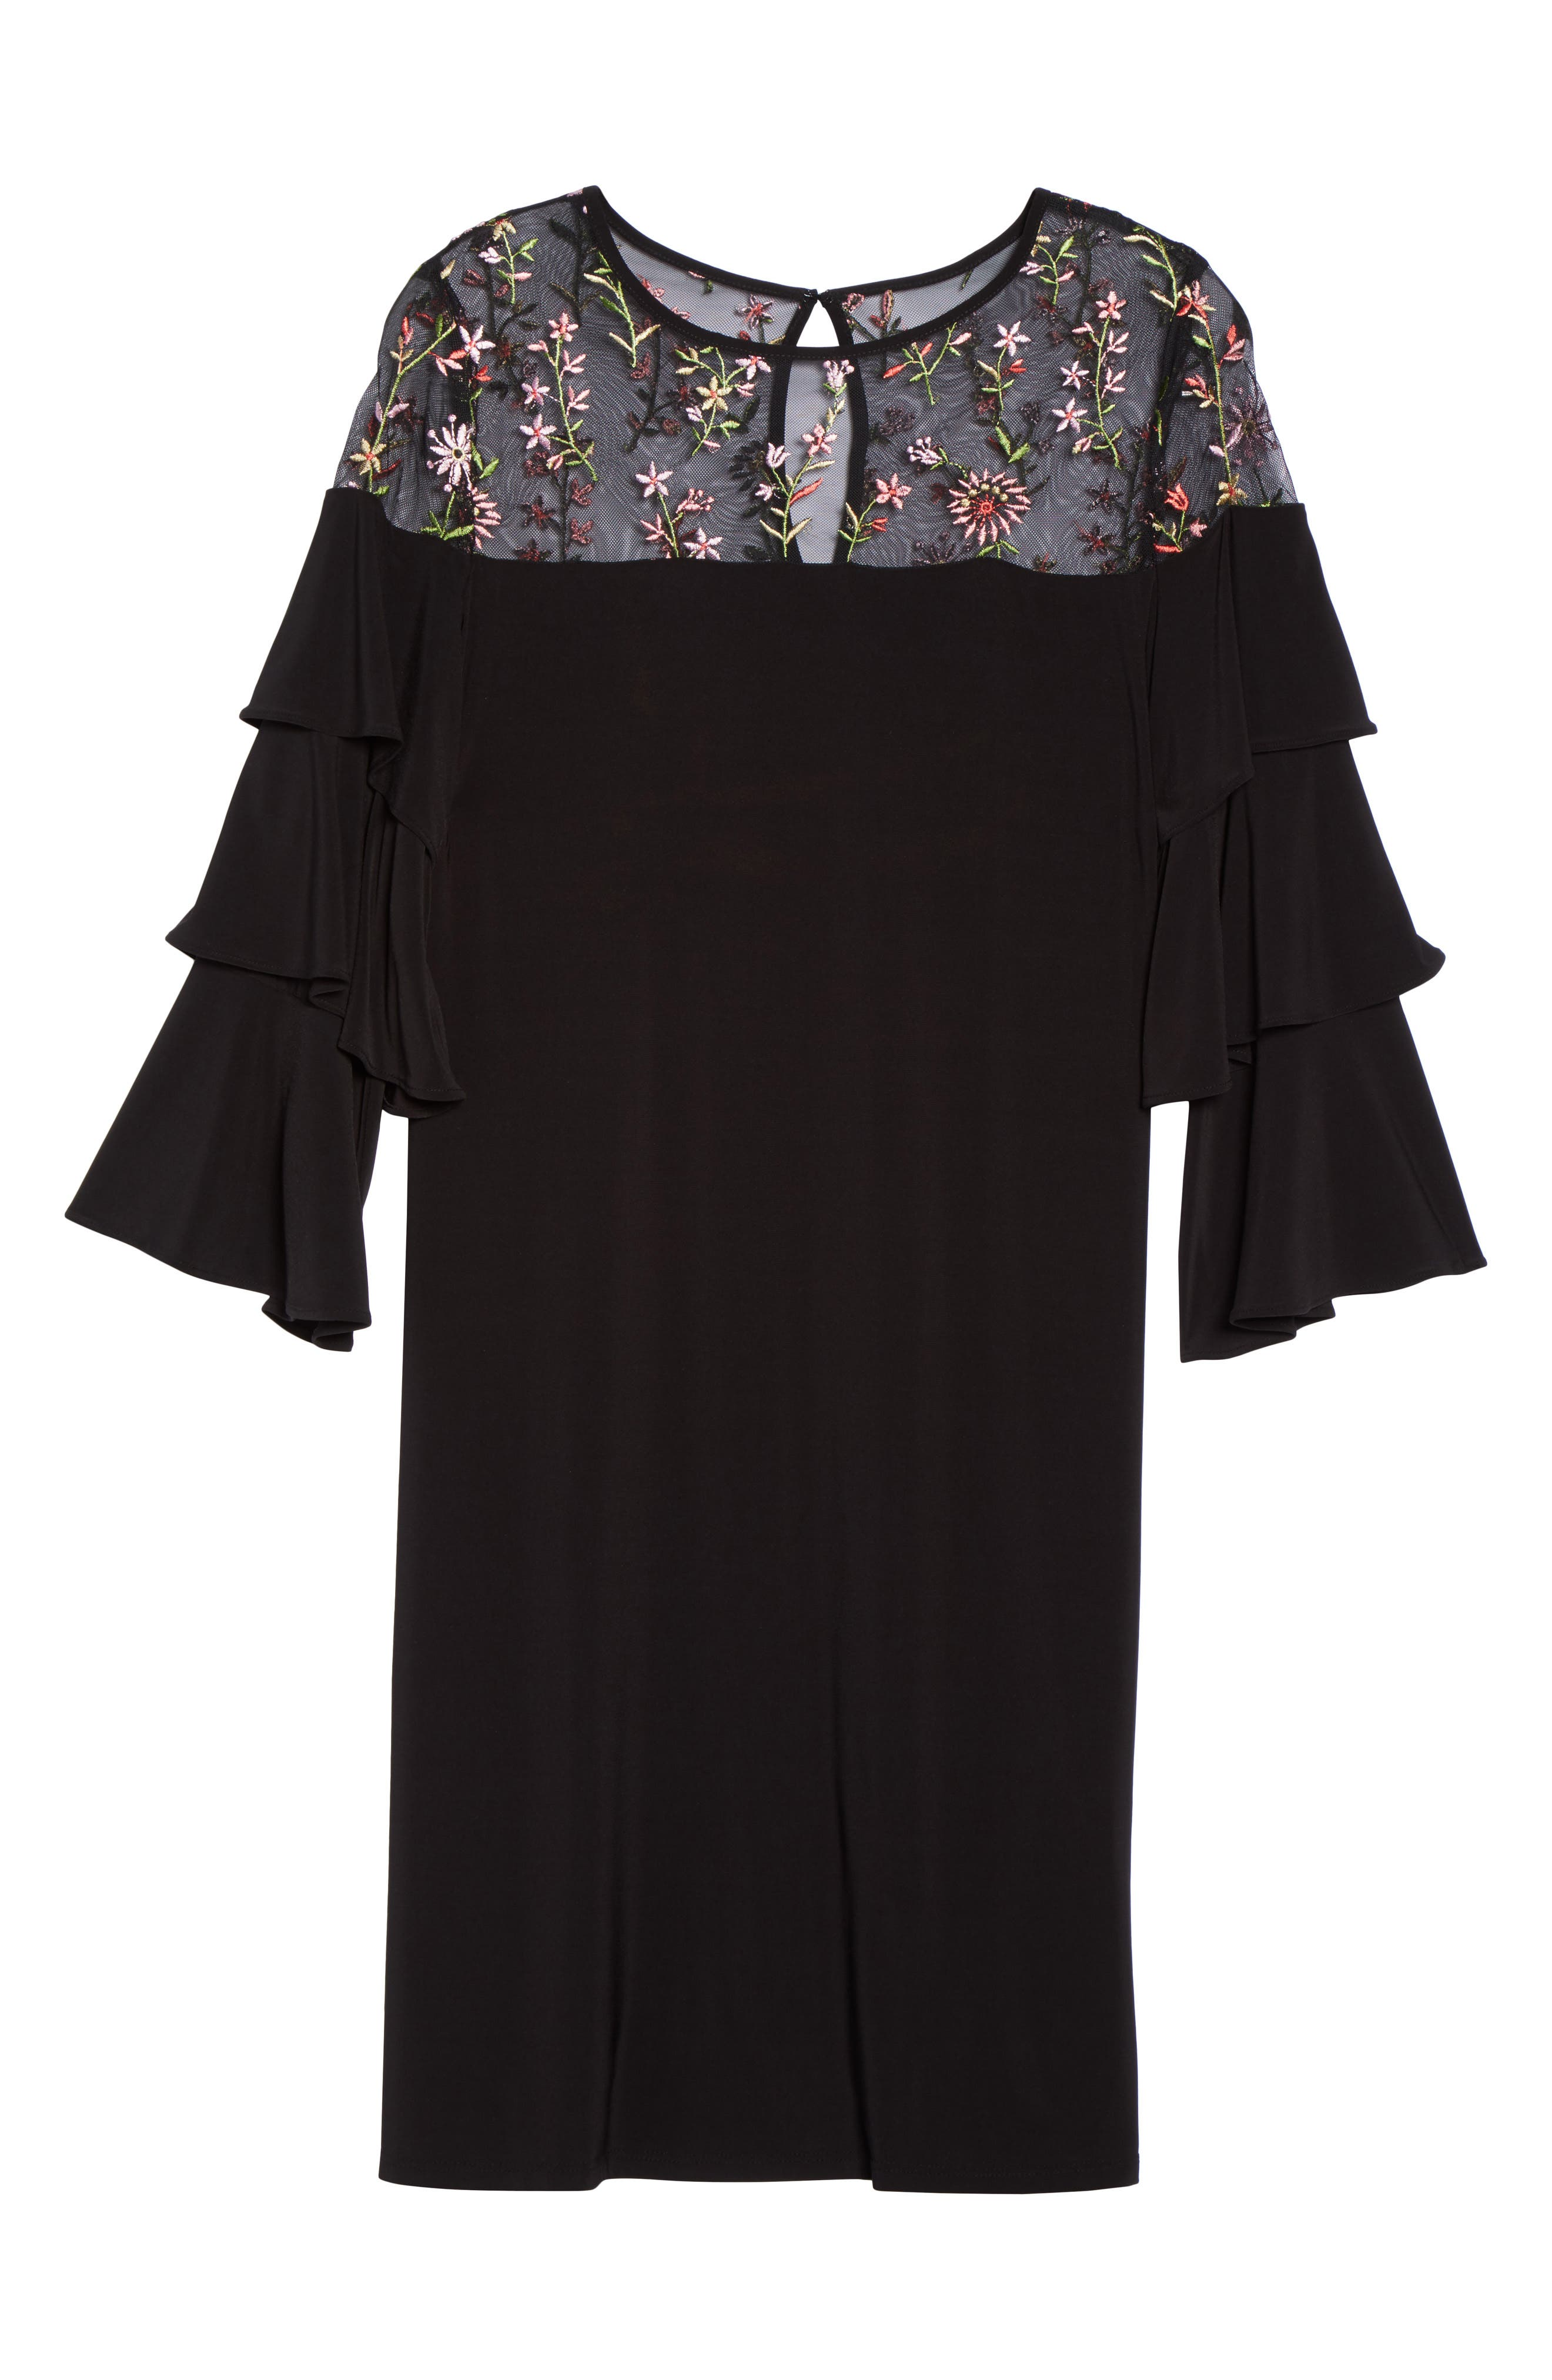 Ruffled Sleeve Embroidered Yoke A-Line Dress,                             Alternate thumbnail 6, color,                             002